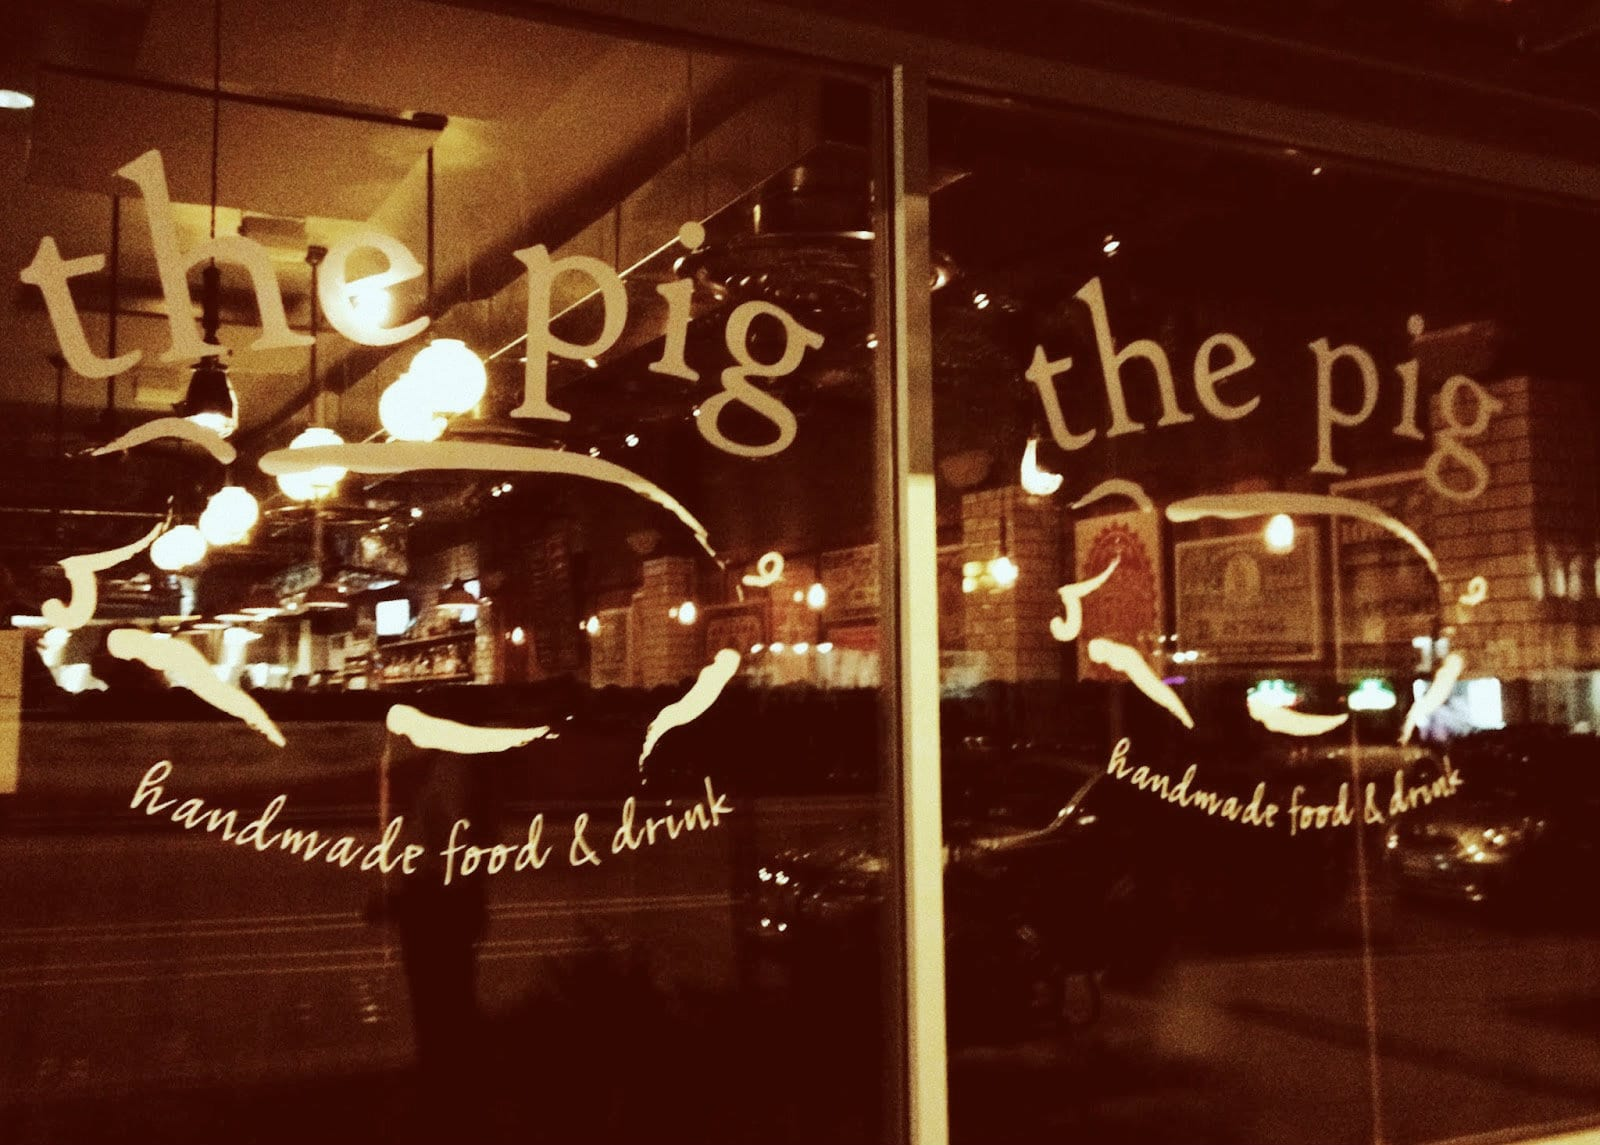 The Pig at 1320 14th St. NW (foodnomad.net)